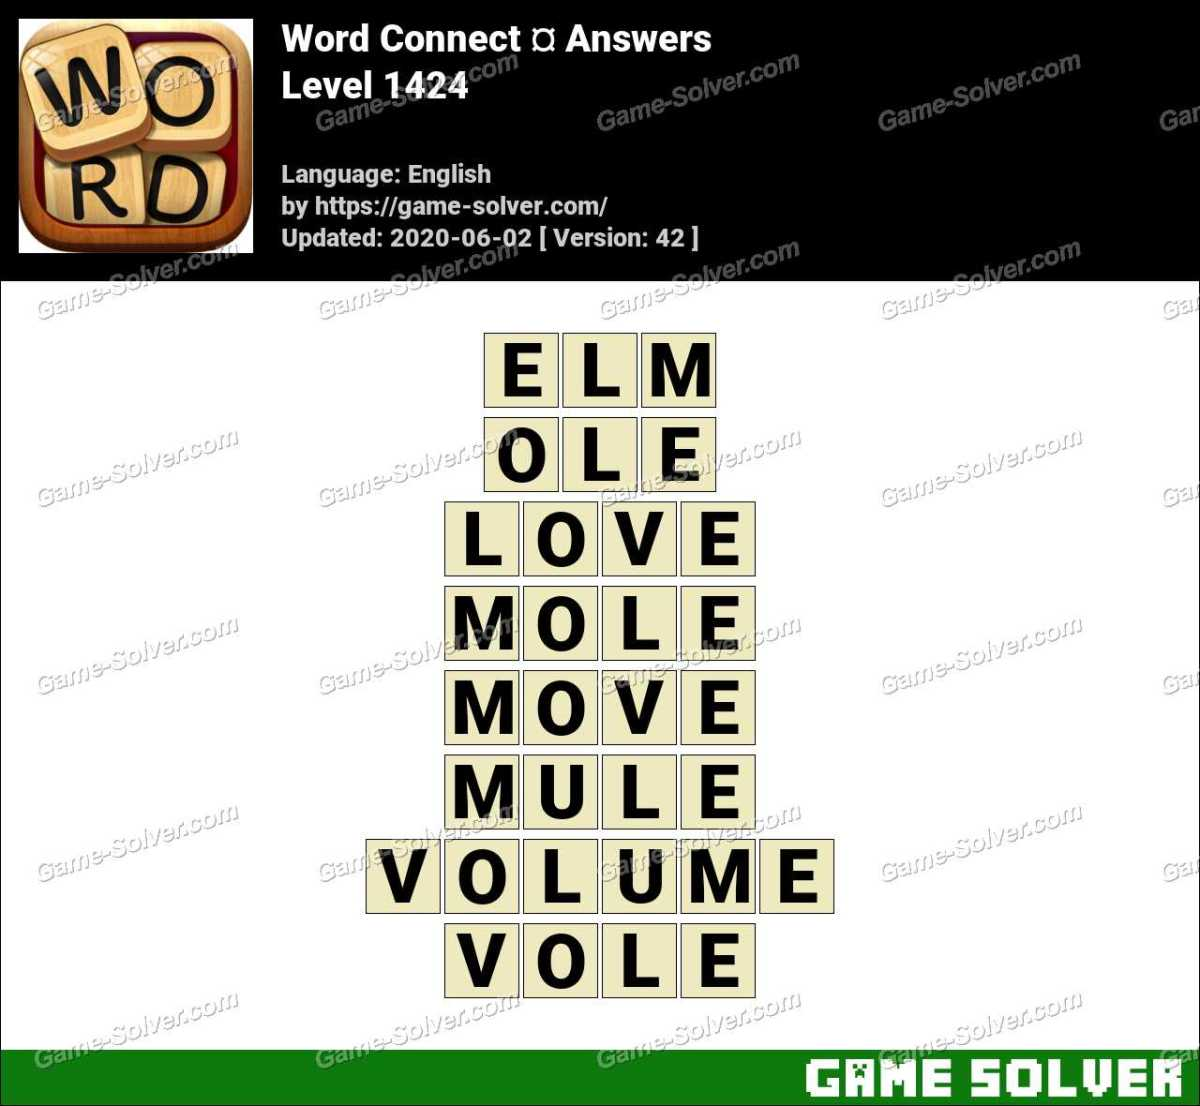 Word Connect Level 1424 Answers